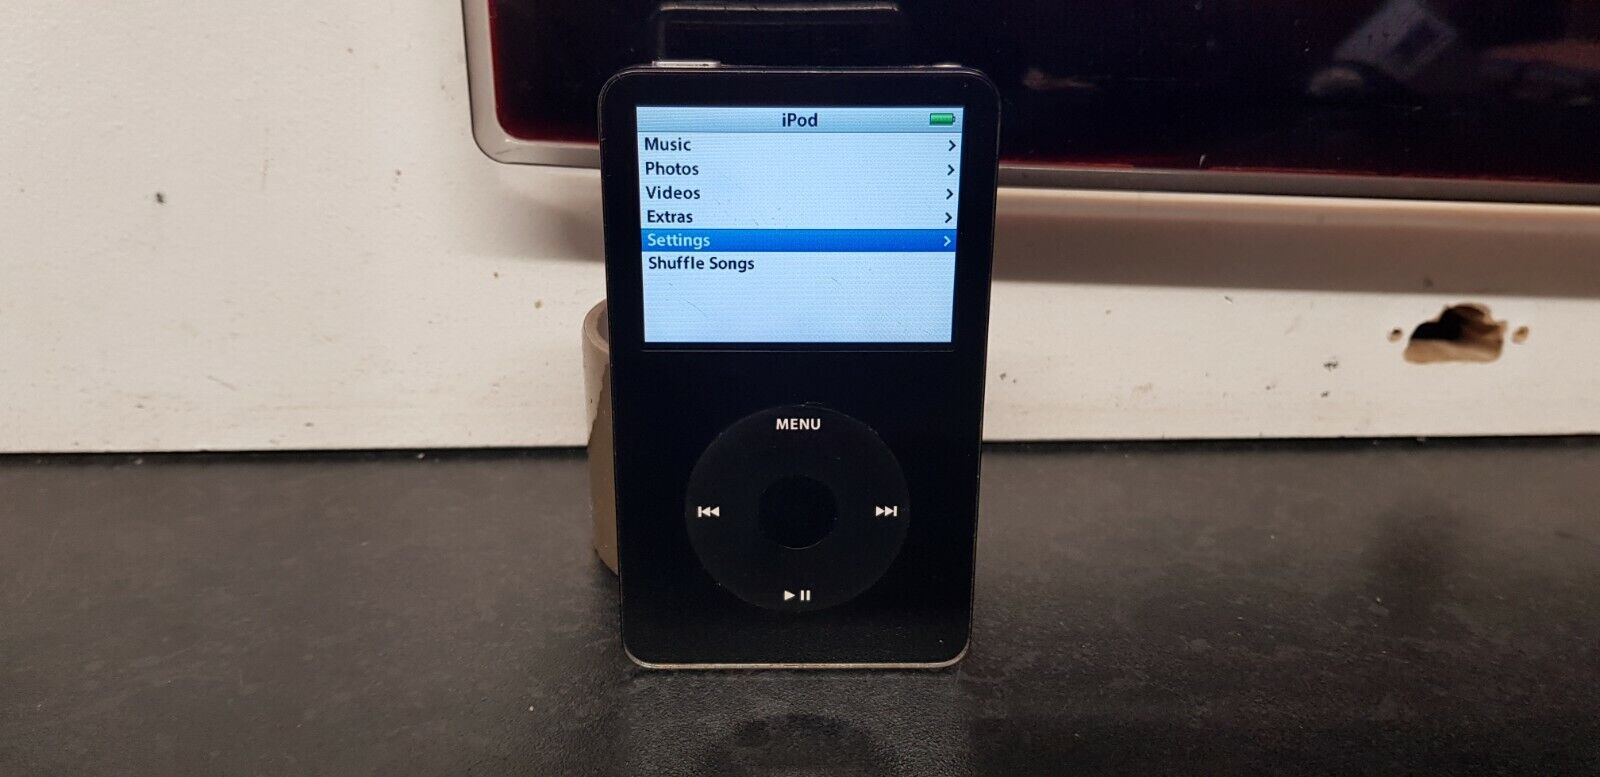 Apple iPod Classic Video A1136 5th gen 80gb Model #MA440LL, 3000 SONGS INCLUDED.